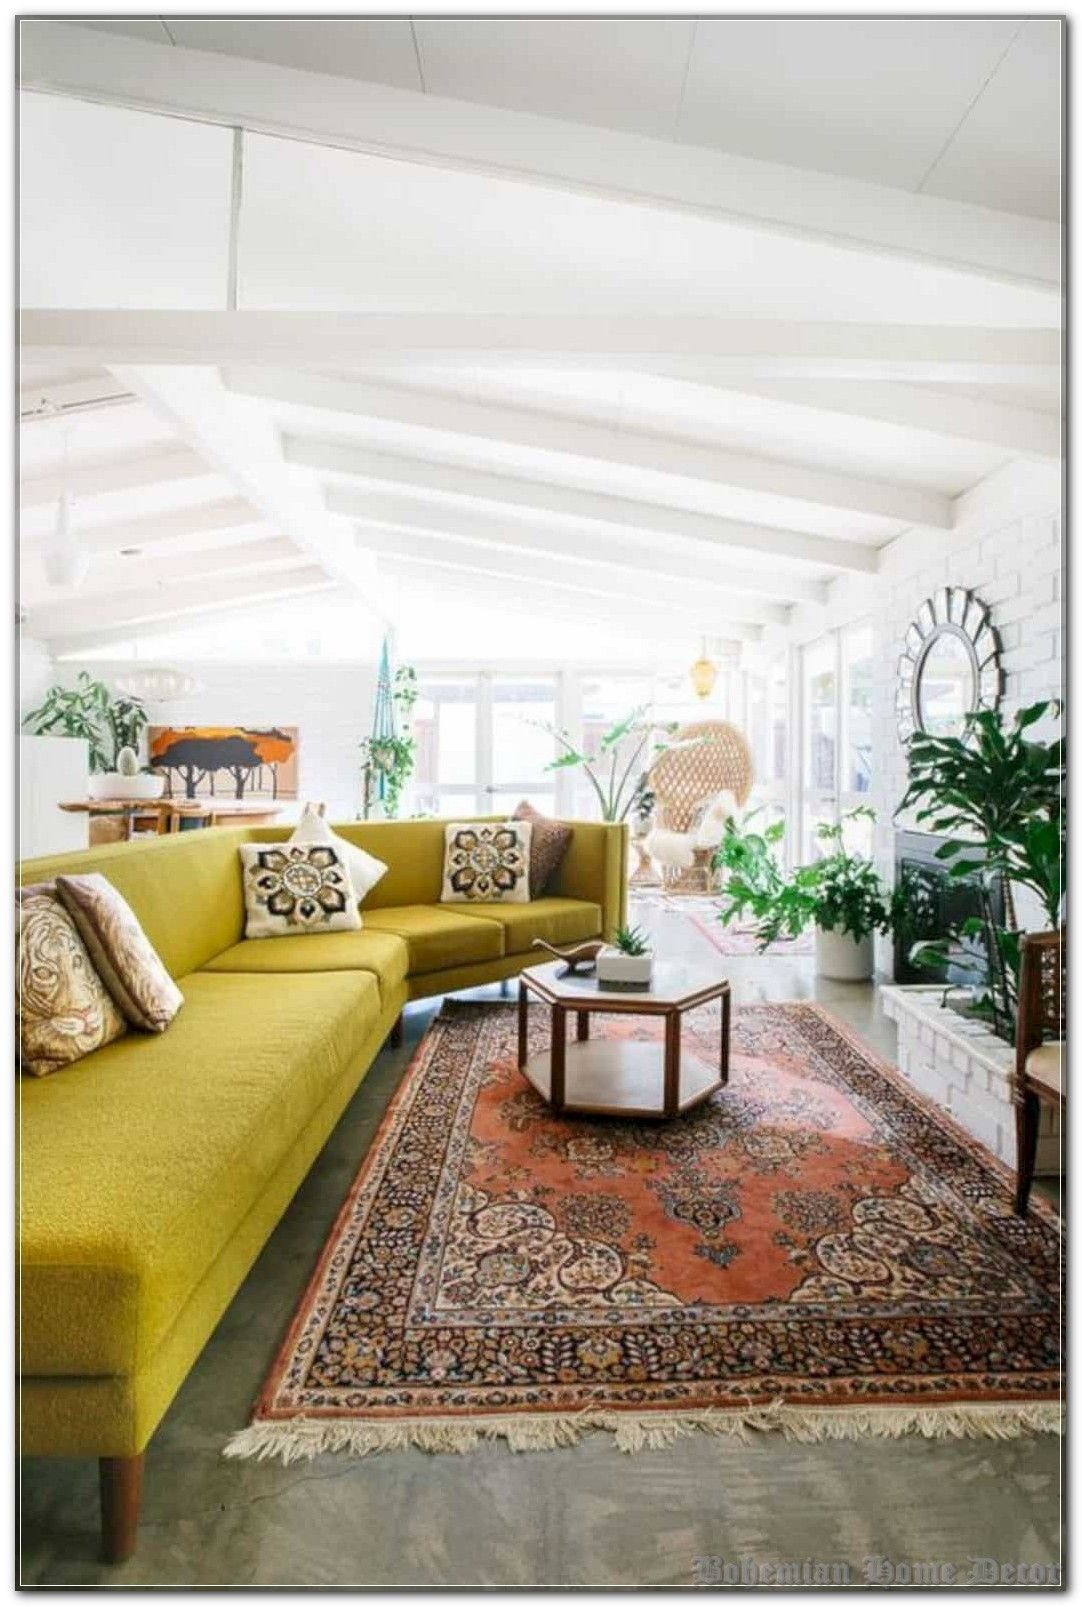 What Make Bohemian Home Decor Don't Want You To Know